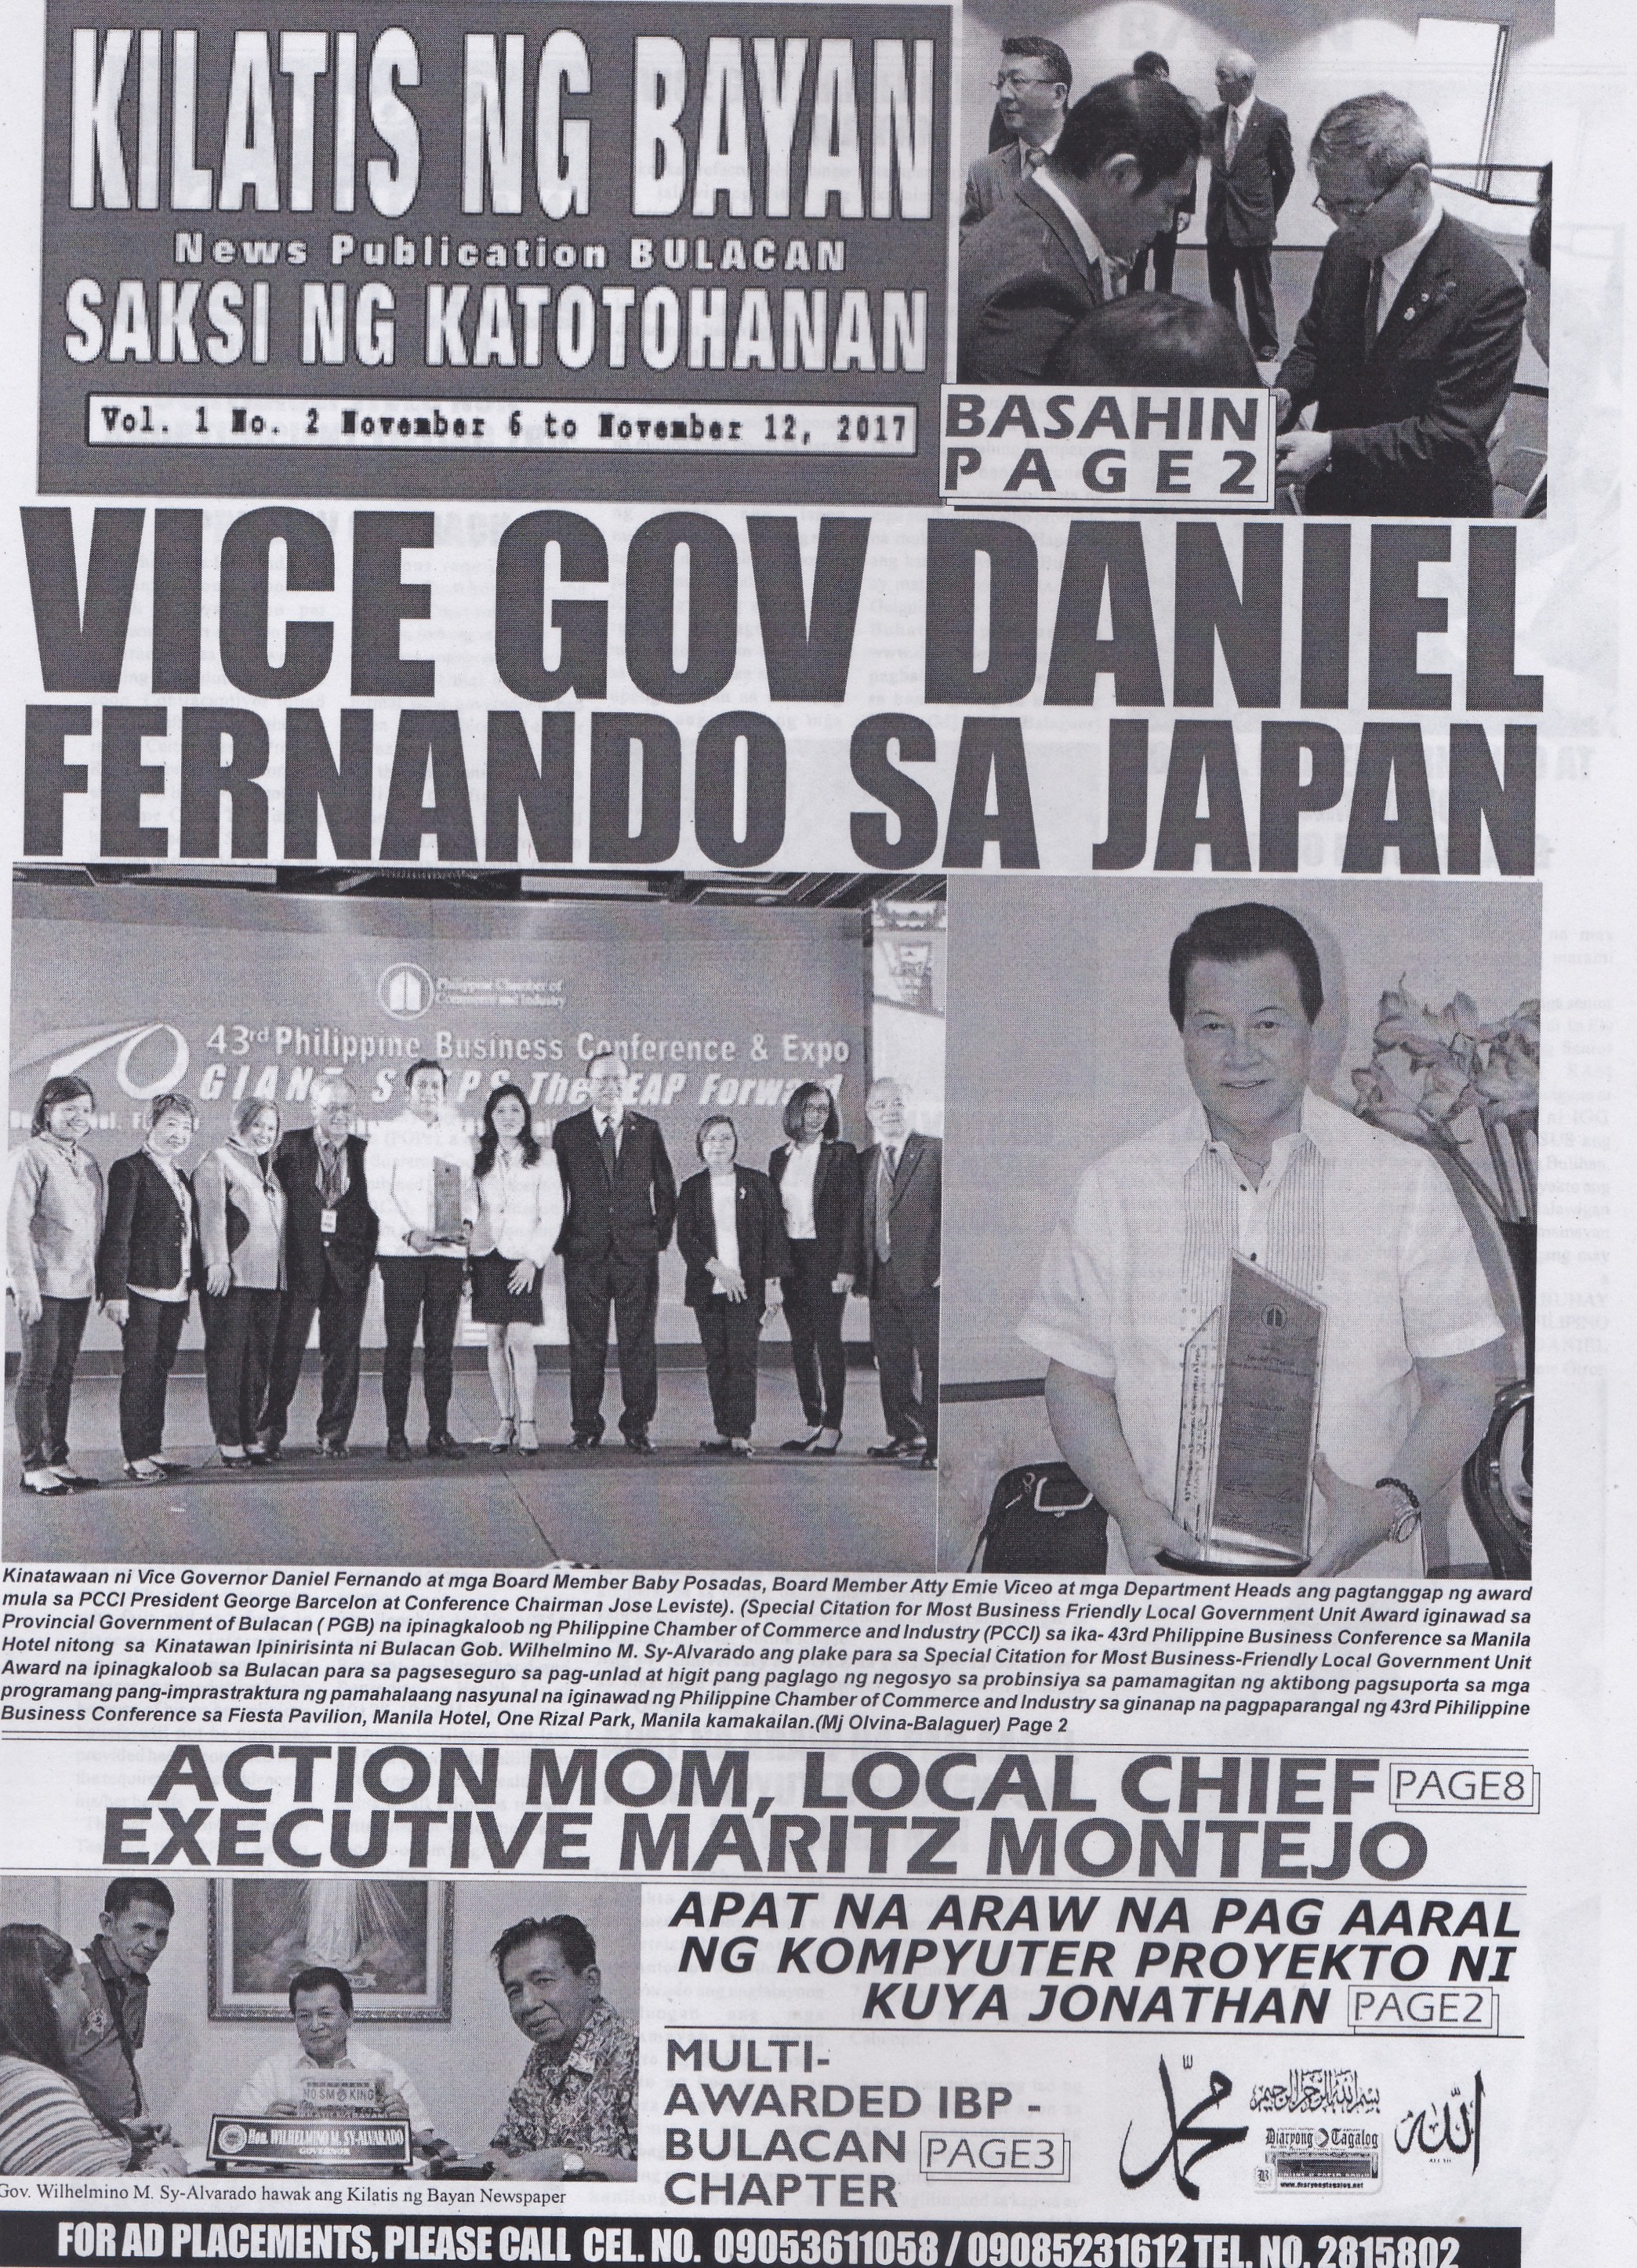 KILATIS ng bayan news publication second issue 110211122017